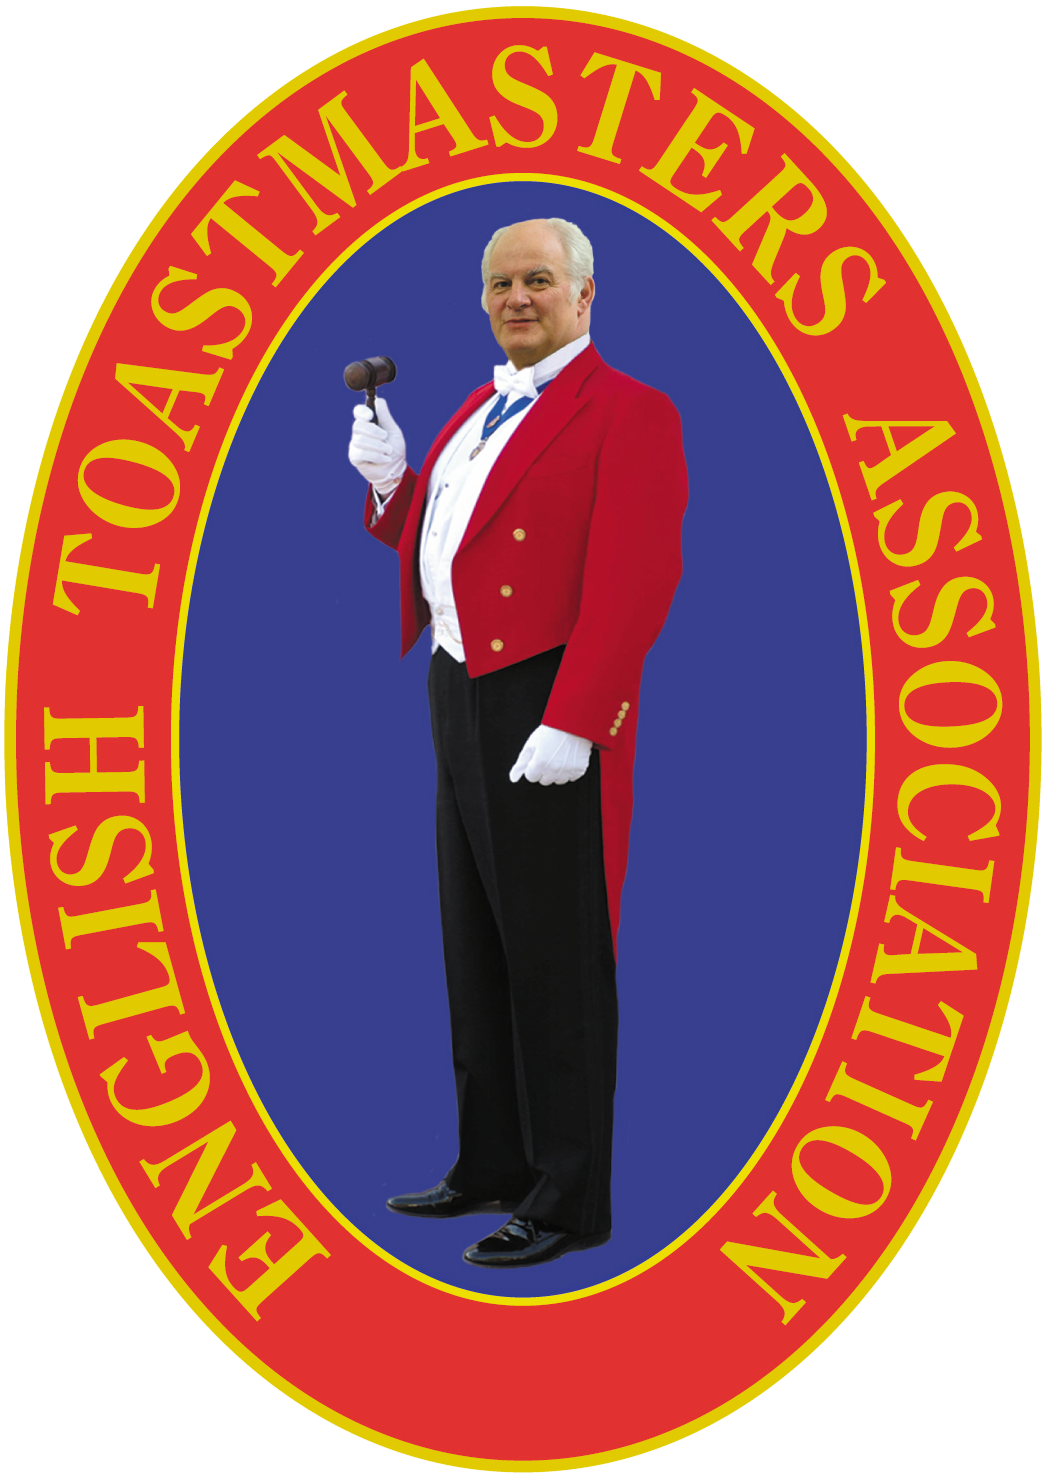 Essex Toastmaster Colin Whitehead is a member of The English Toastmasters Association